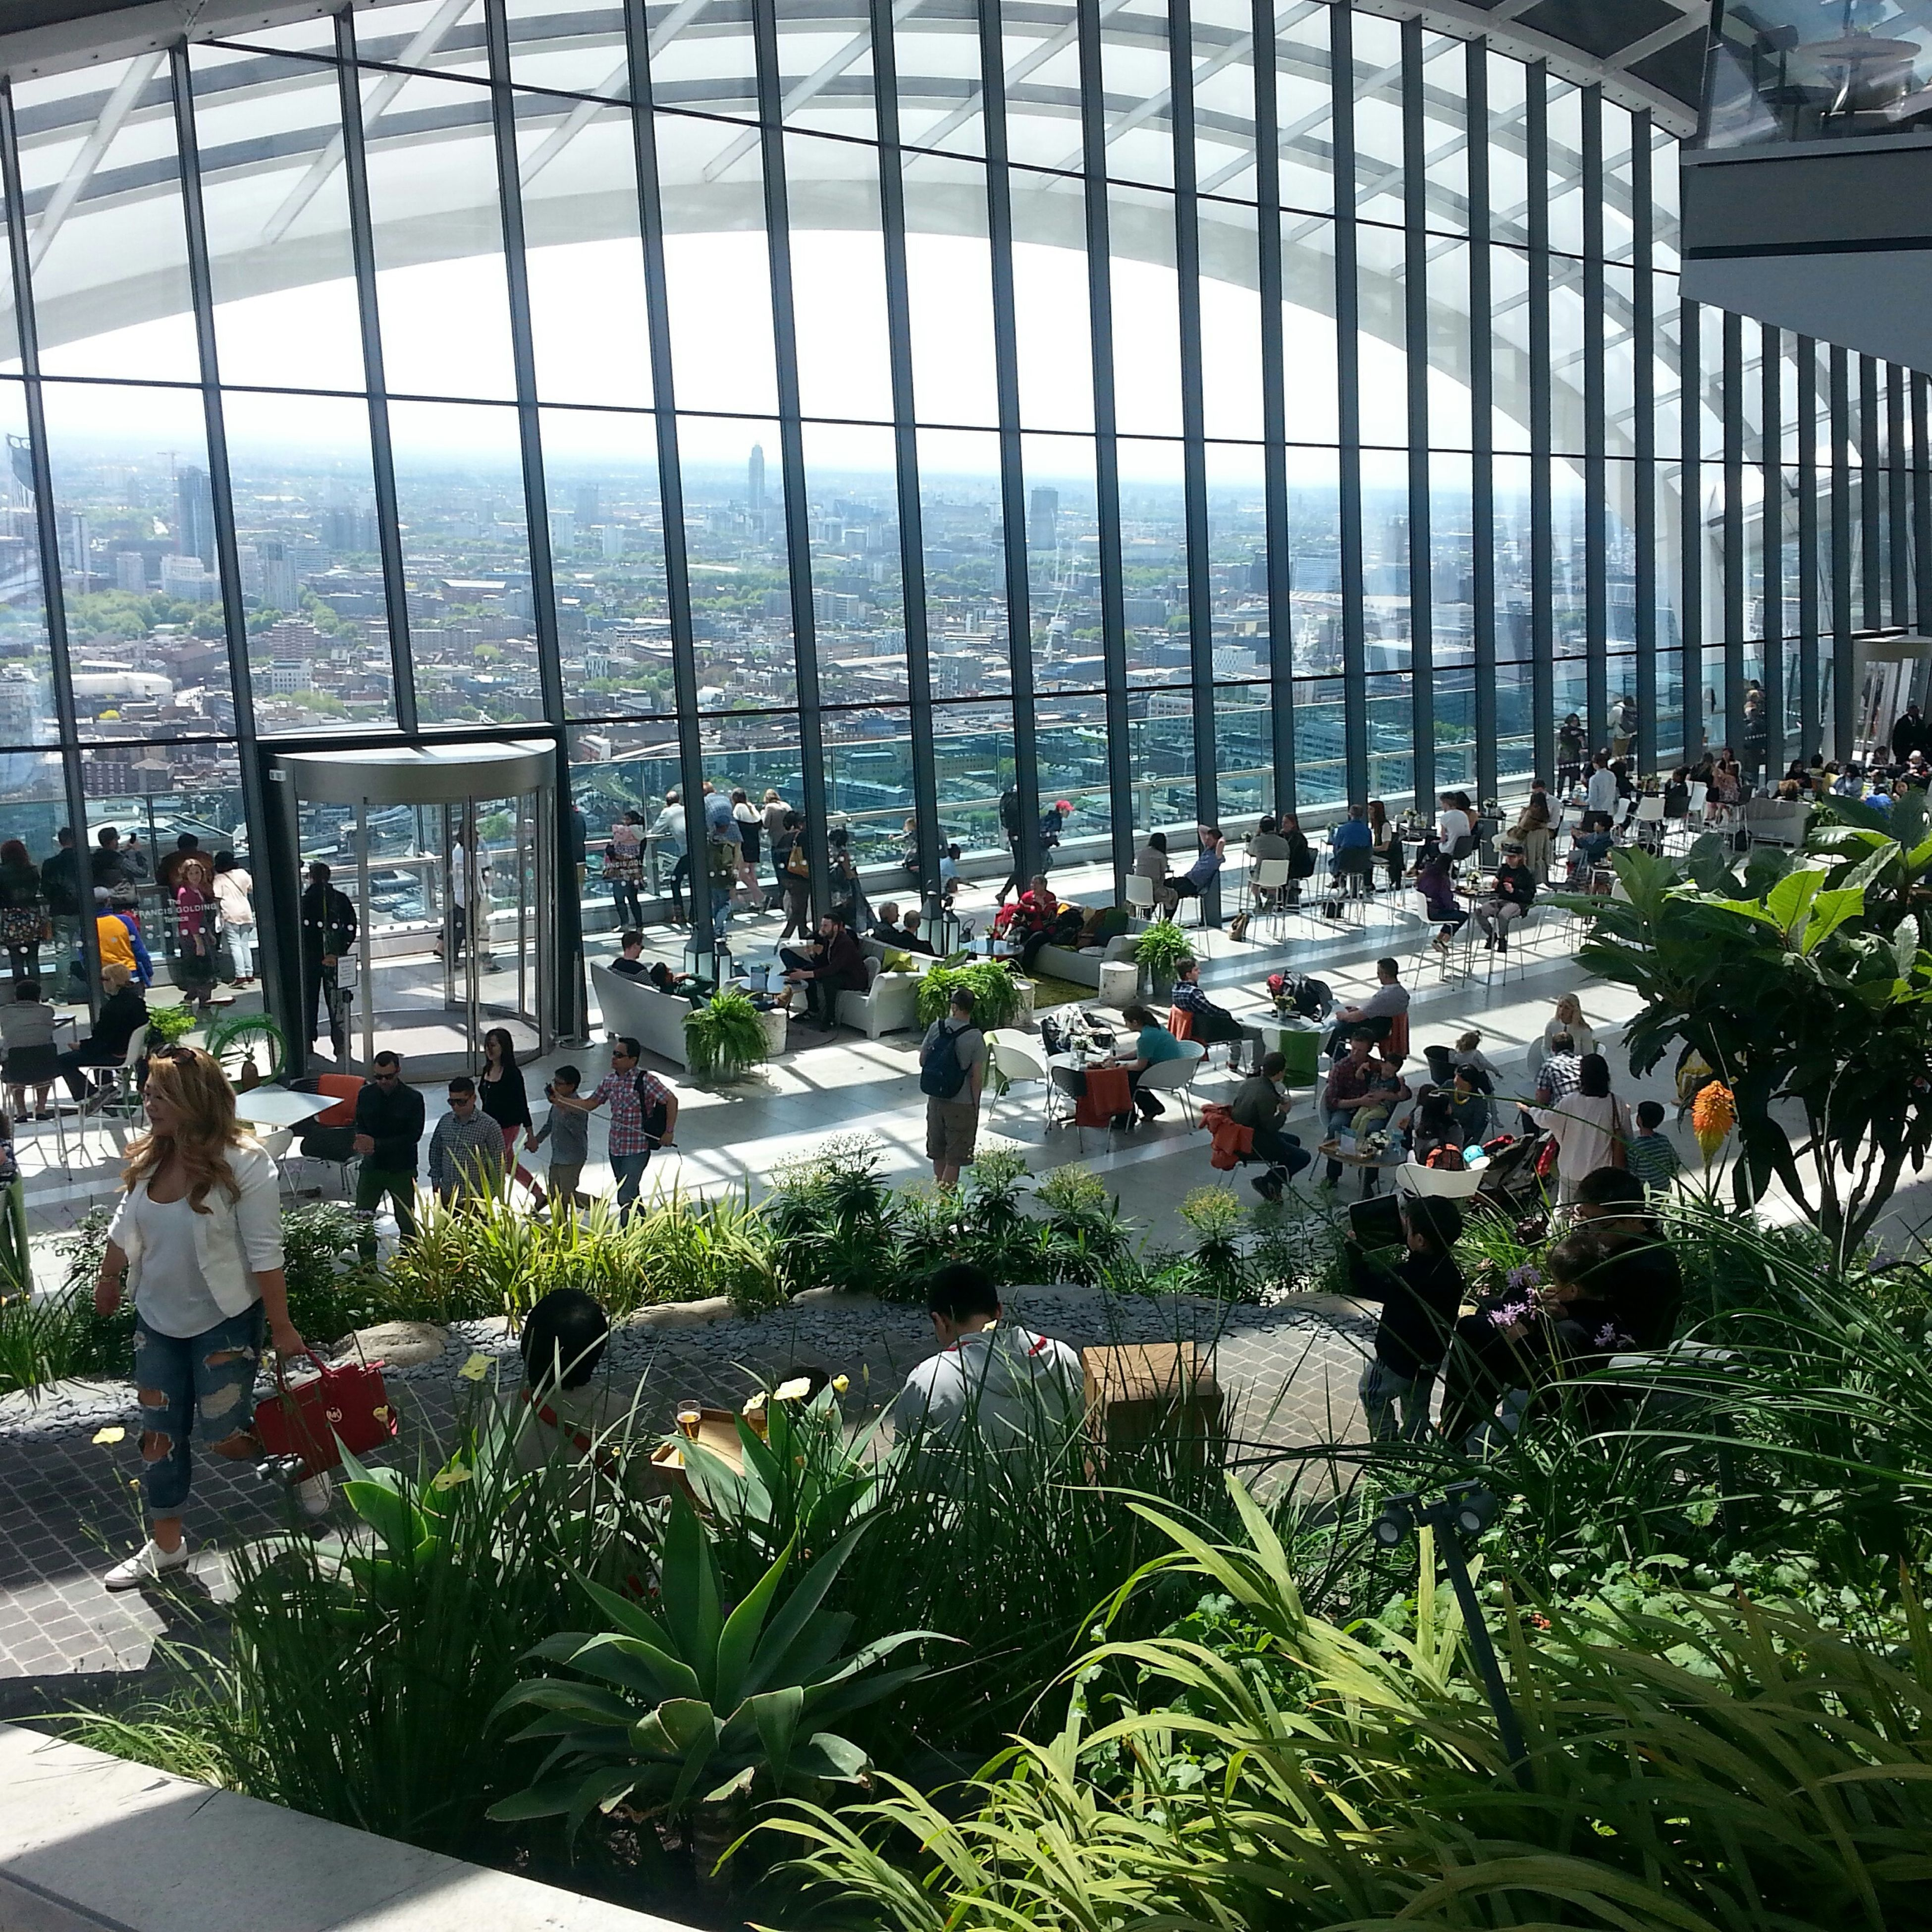 architecture, built structure, building exterior, plant, city, potted plant, growth, flower, high angle view, tree, day, sunlight, men, chair, incidental people, city life, building, person, green color